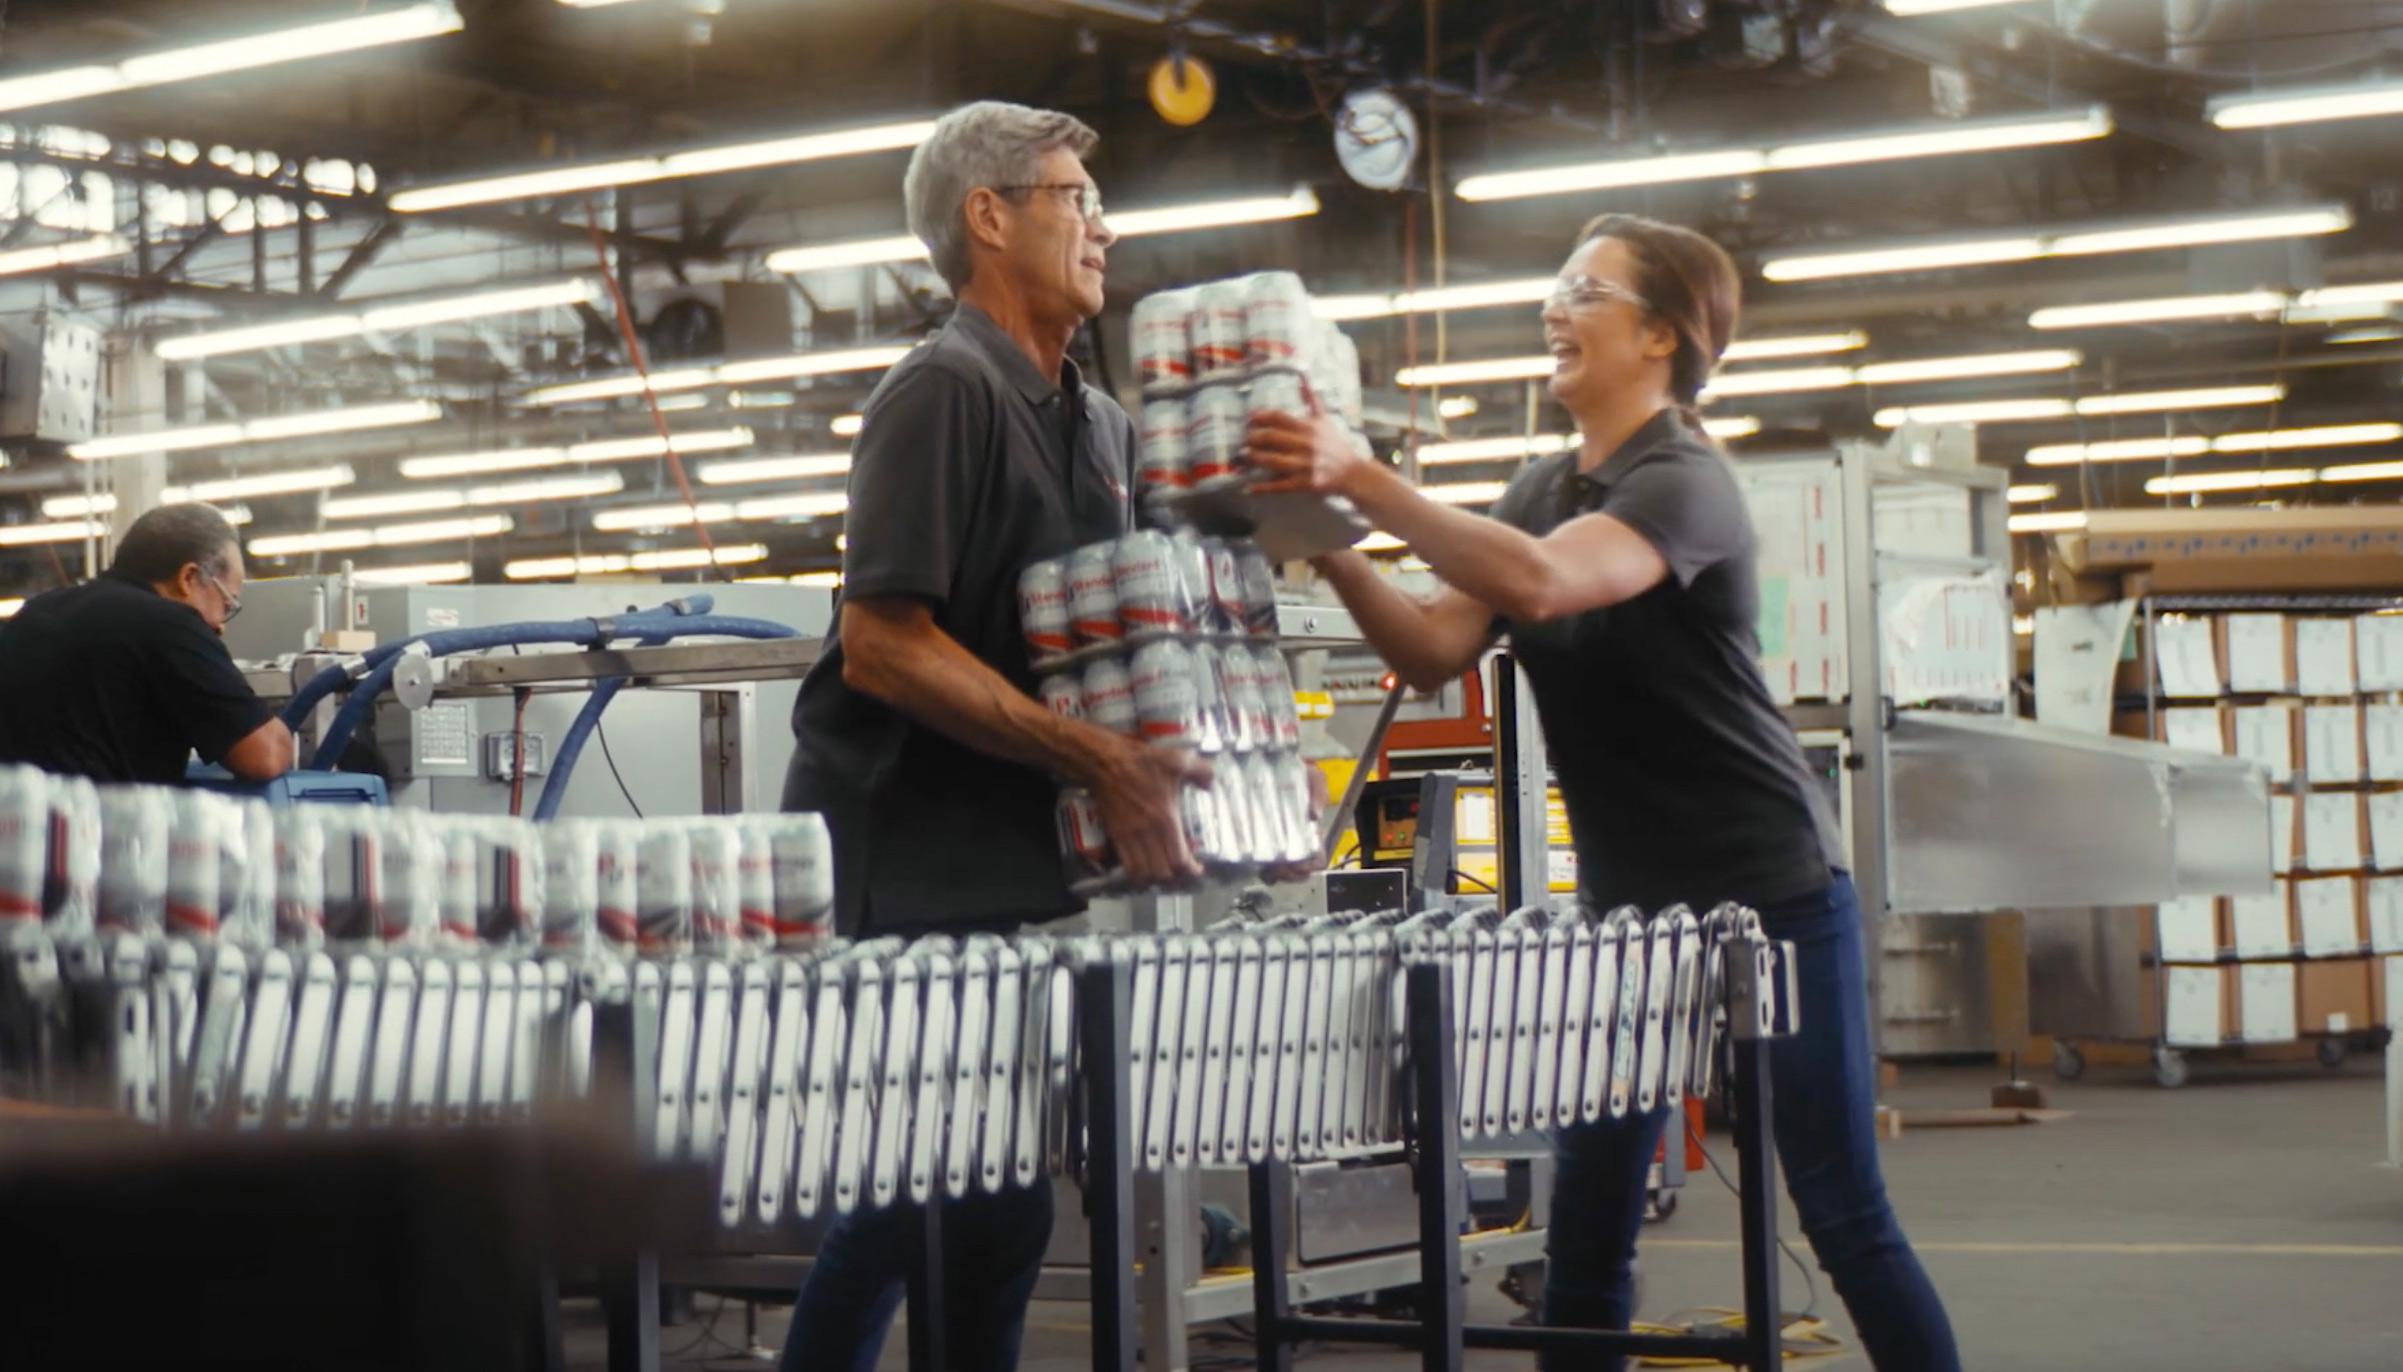 Standard-Knapp Featured in New Liberty Bank Commercials